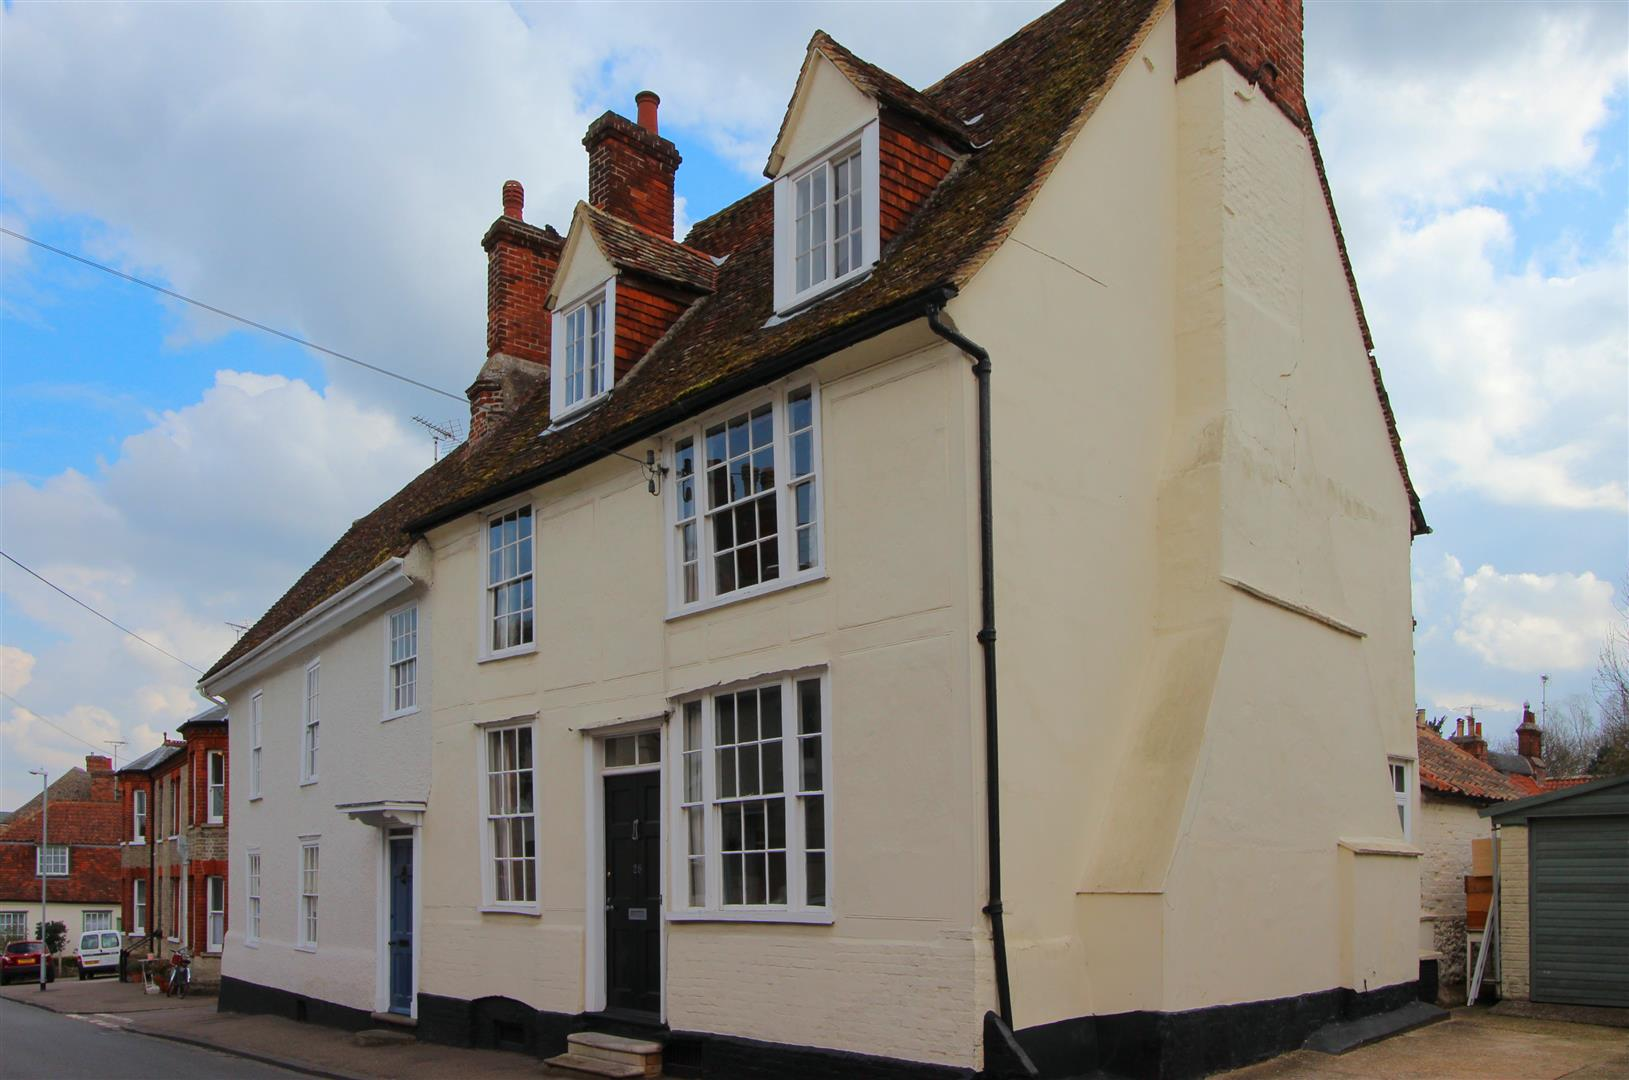 26 for sale in Linton